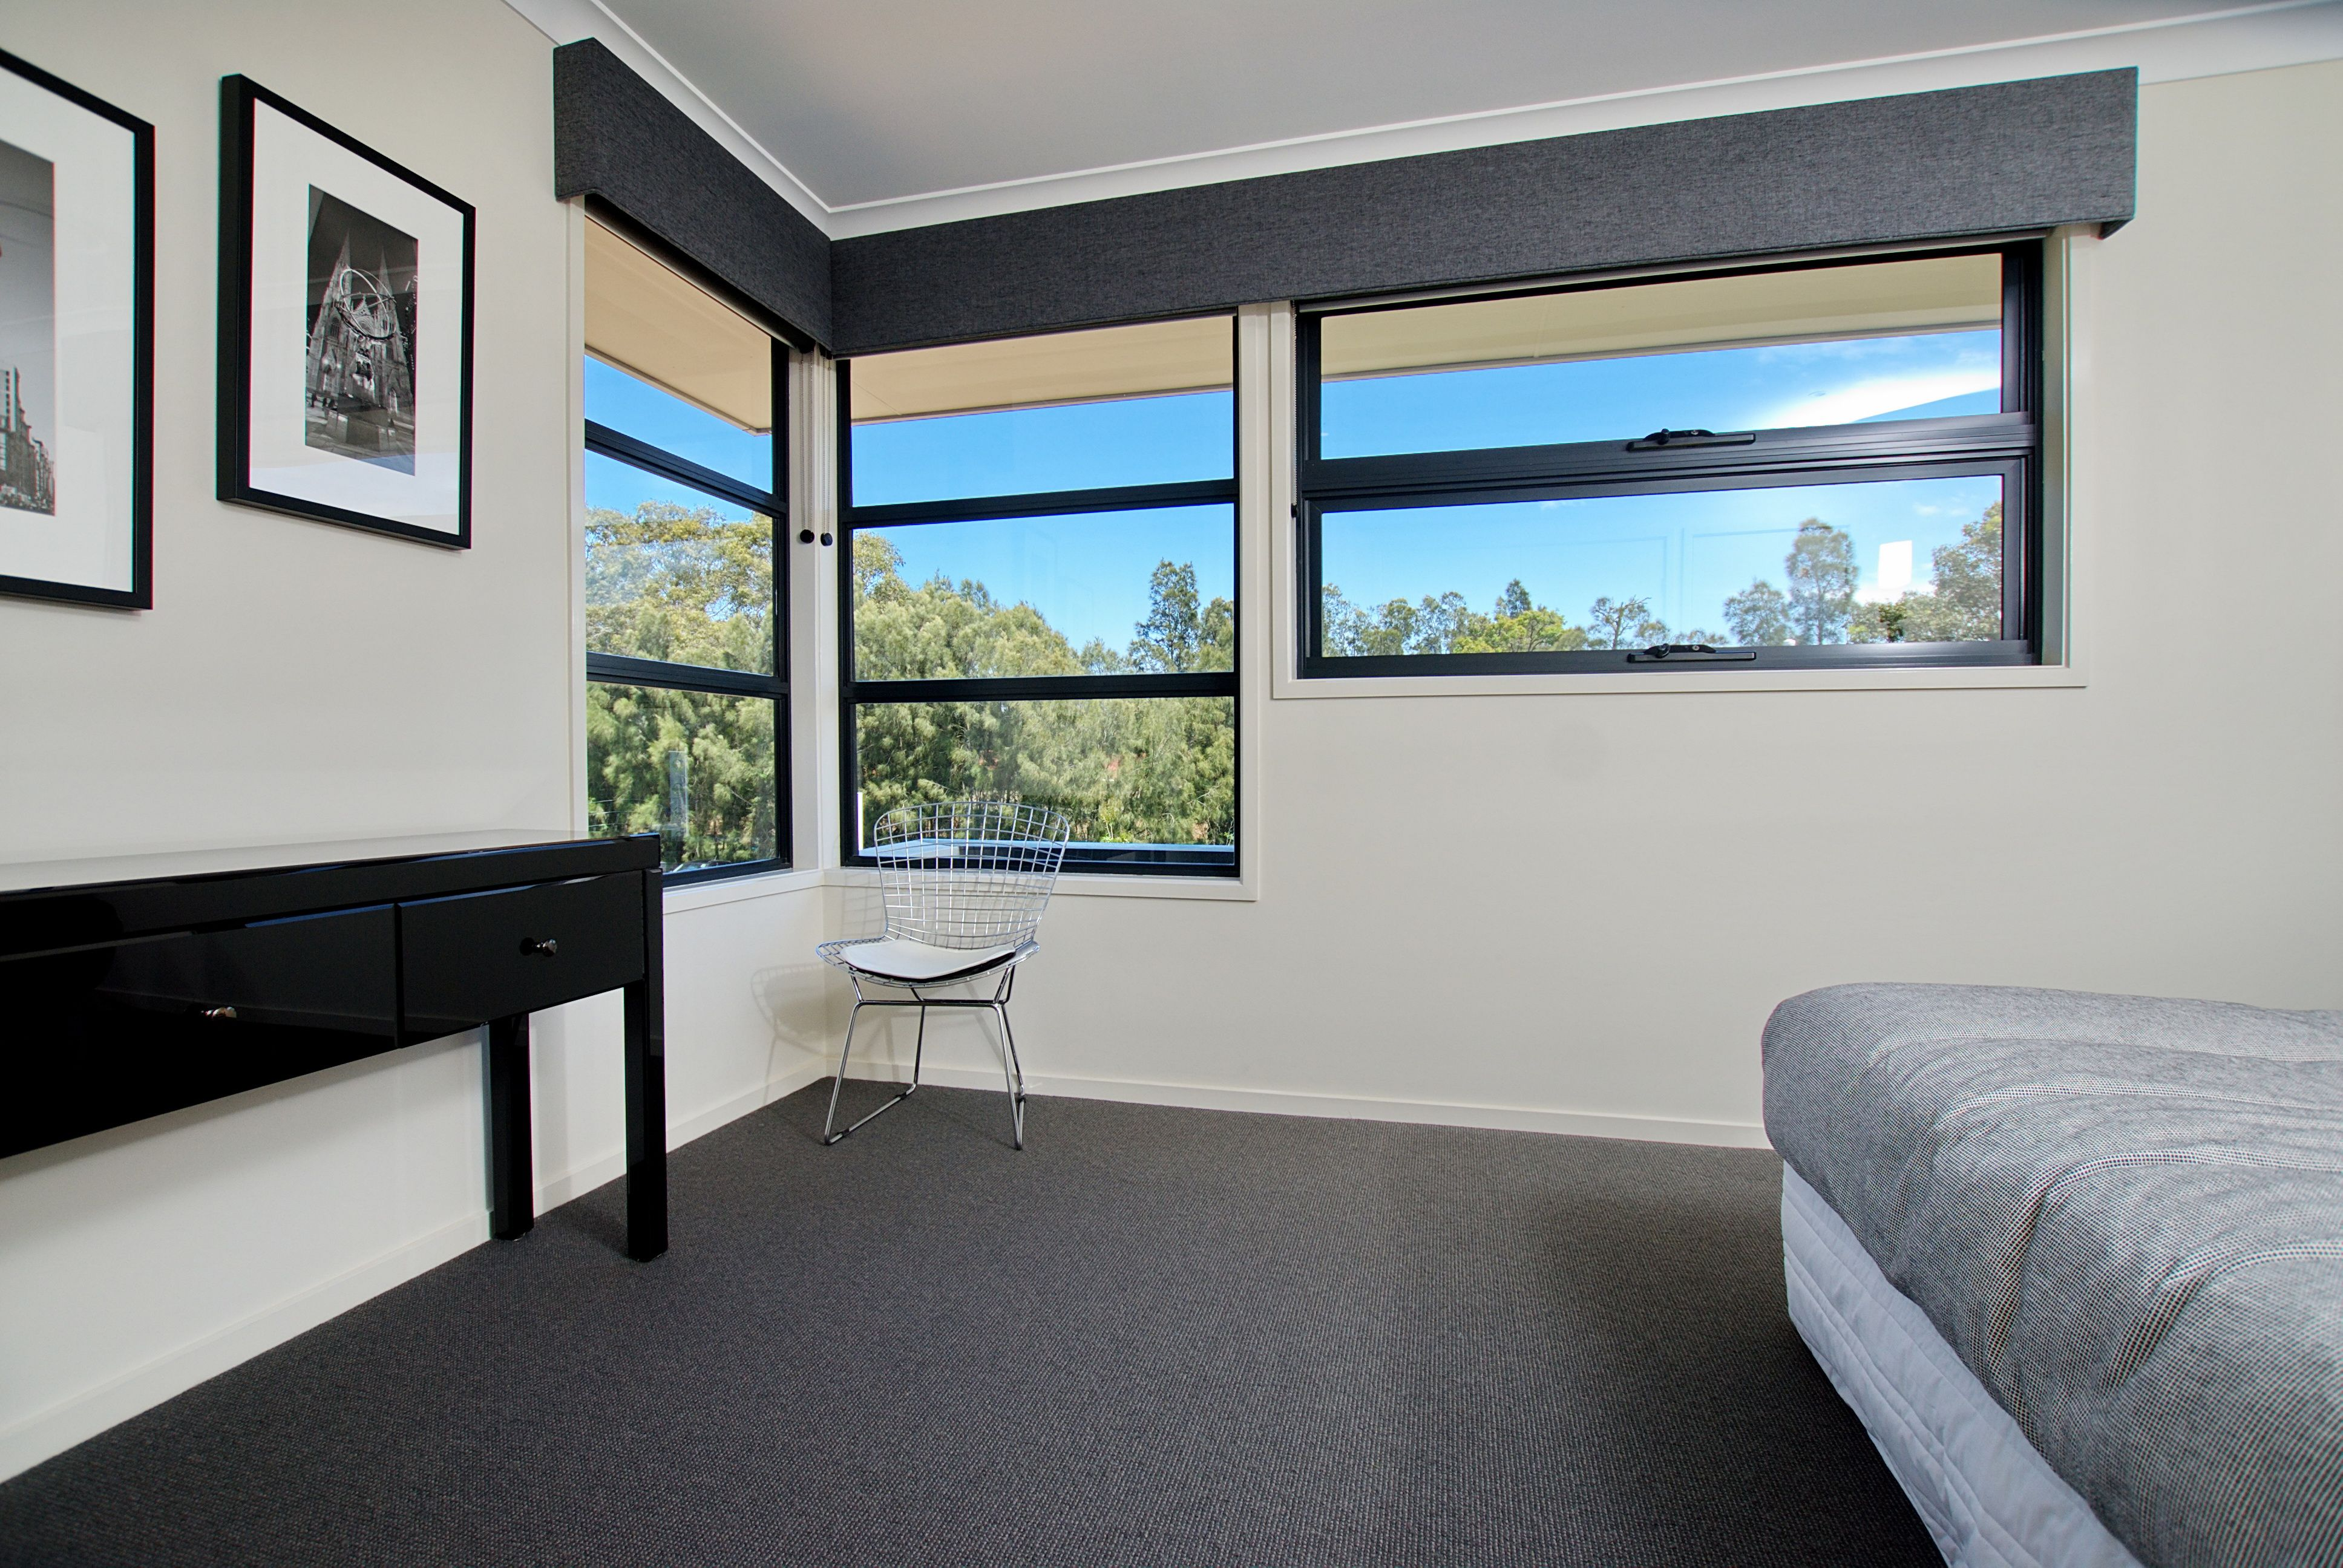 Horizon Aluminium Awning Window Are The Perfect Addition To A Bedroom Or Study Looks Great Combined With Fixed Lites Awning Windows Windows Windows And Doors